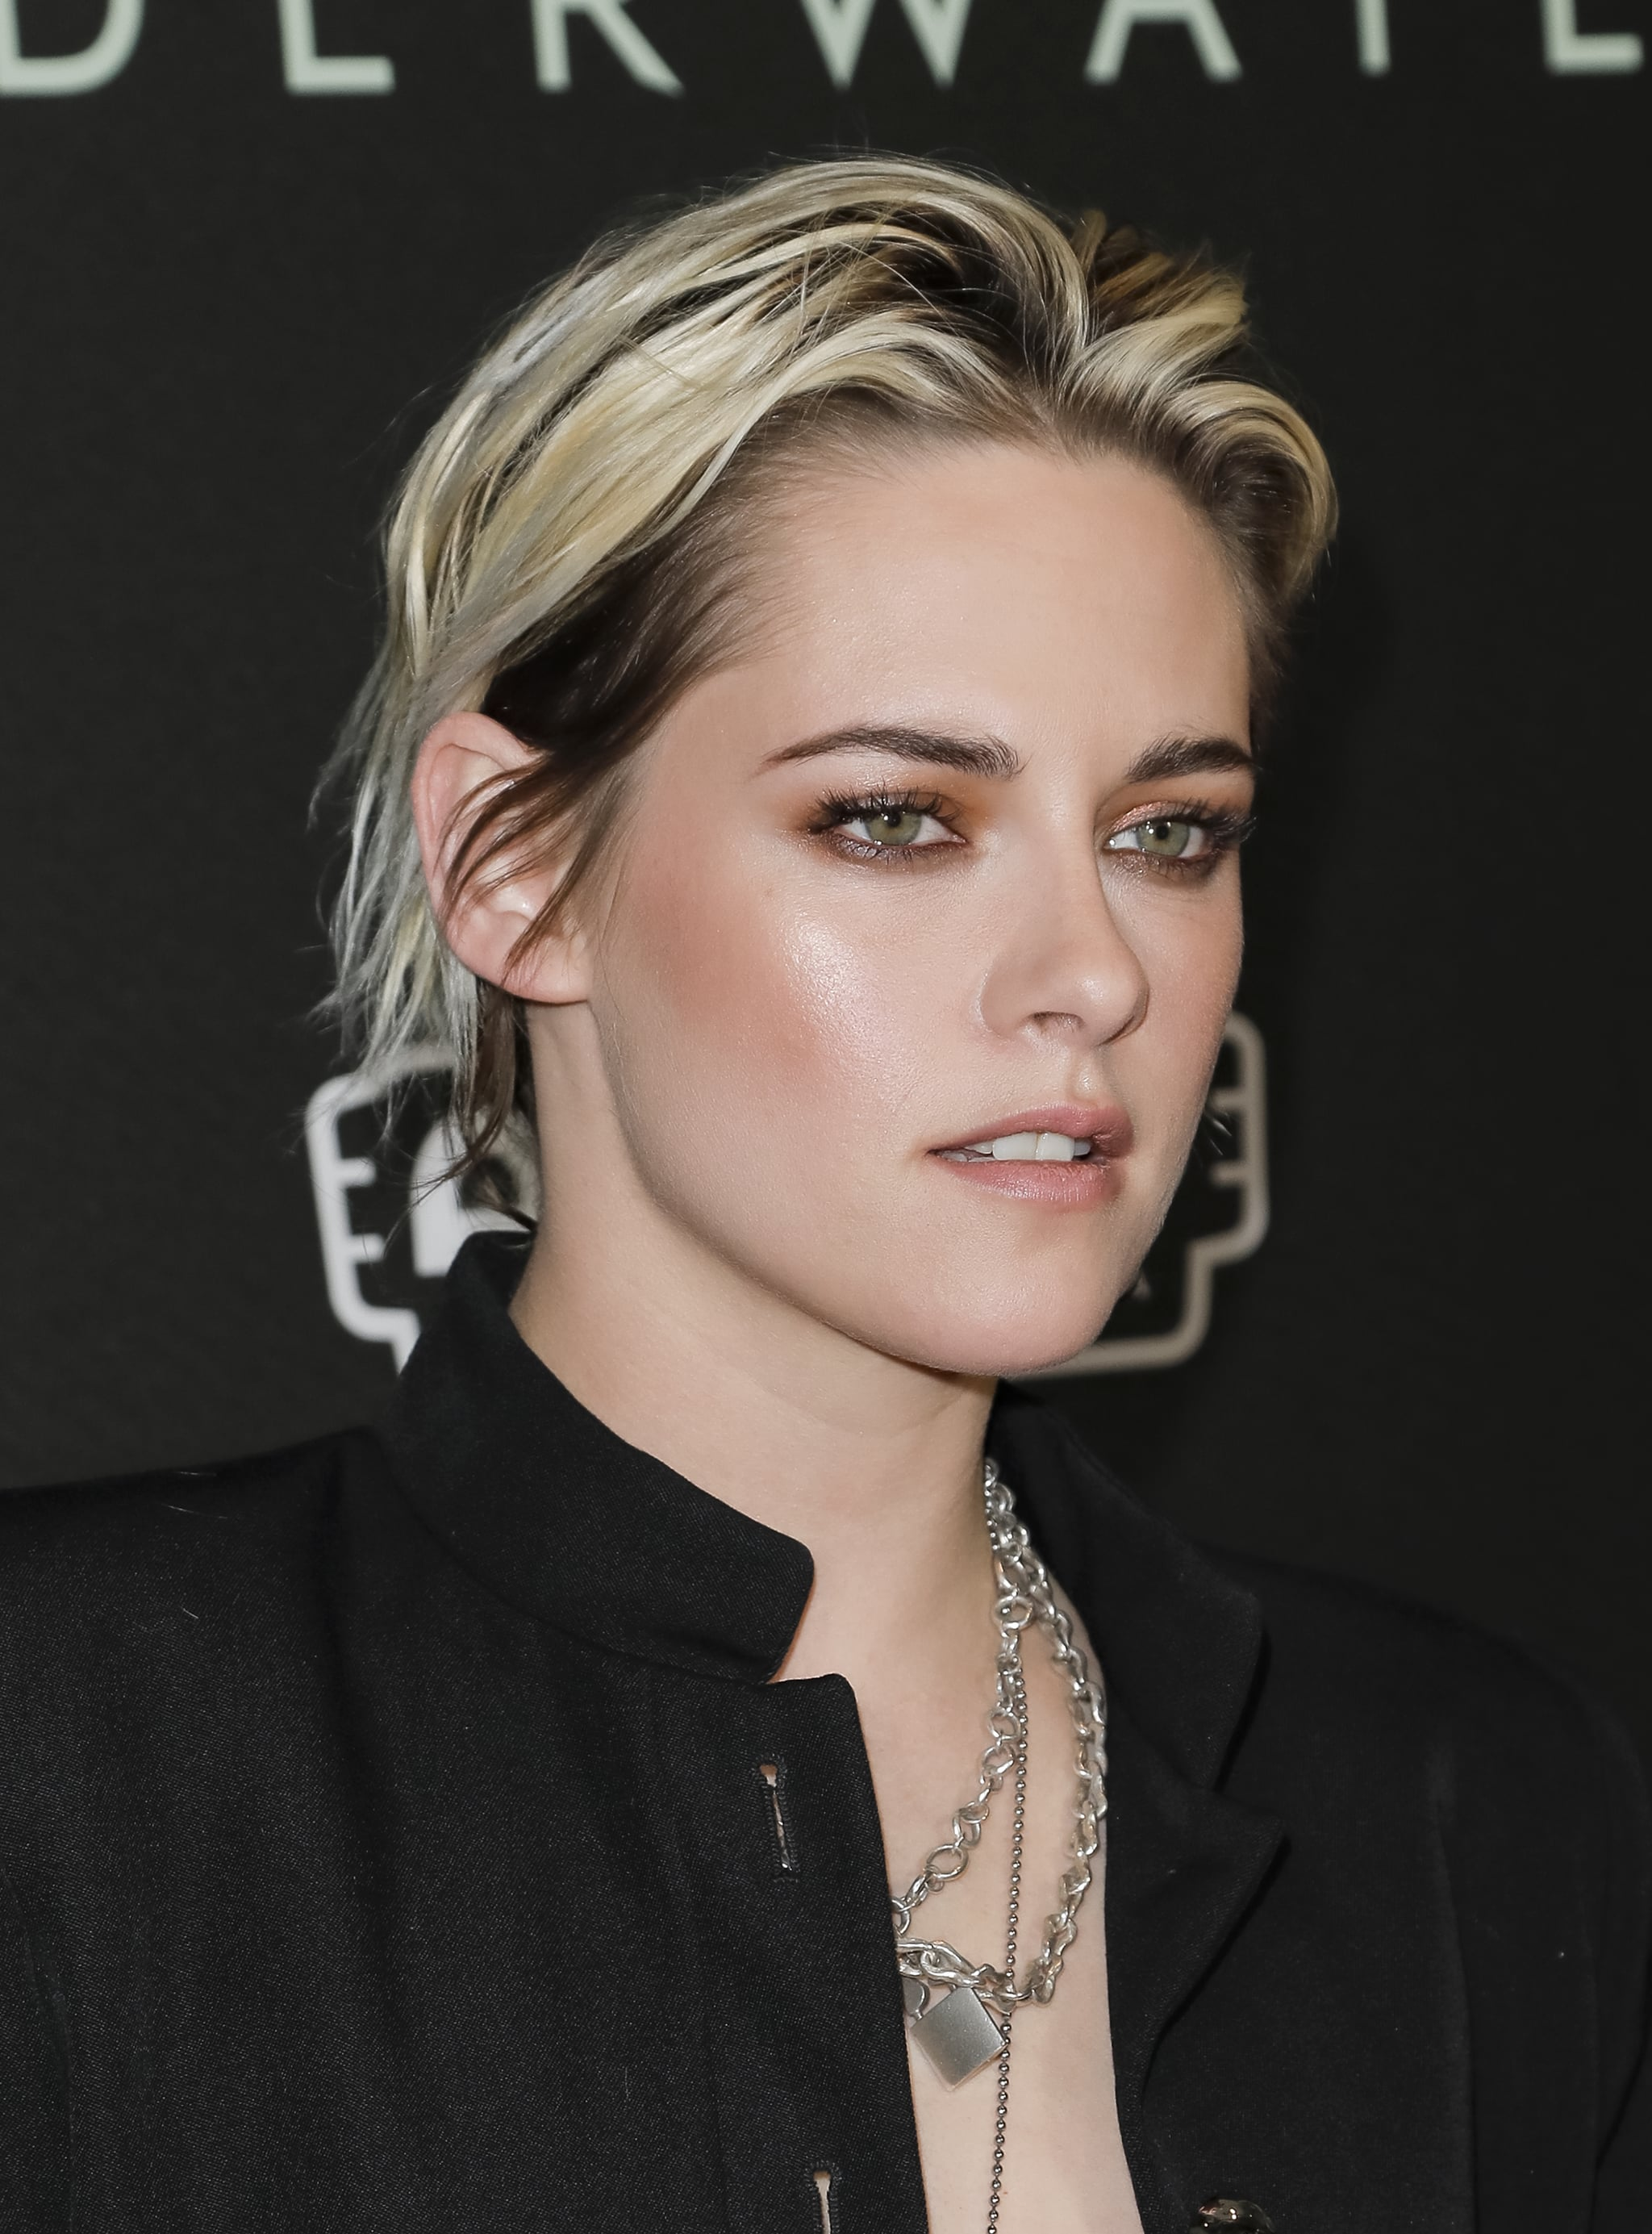 Makeup Beauty Hair Skin Yep Kristen Stewart S New Blond Hair Color Is A Total Mess And That S The Point Popsugar Beauty Middle East Photo 5